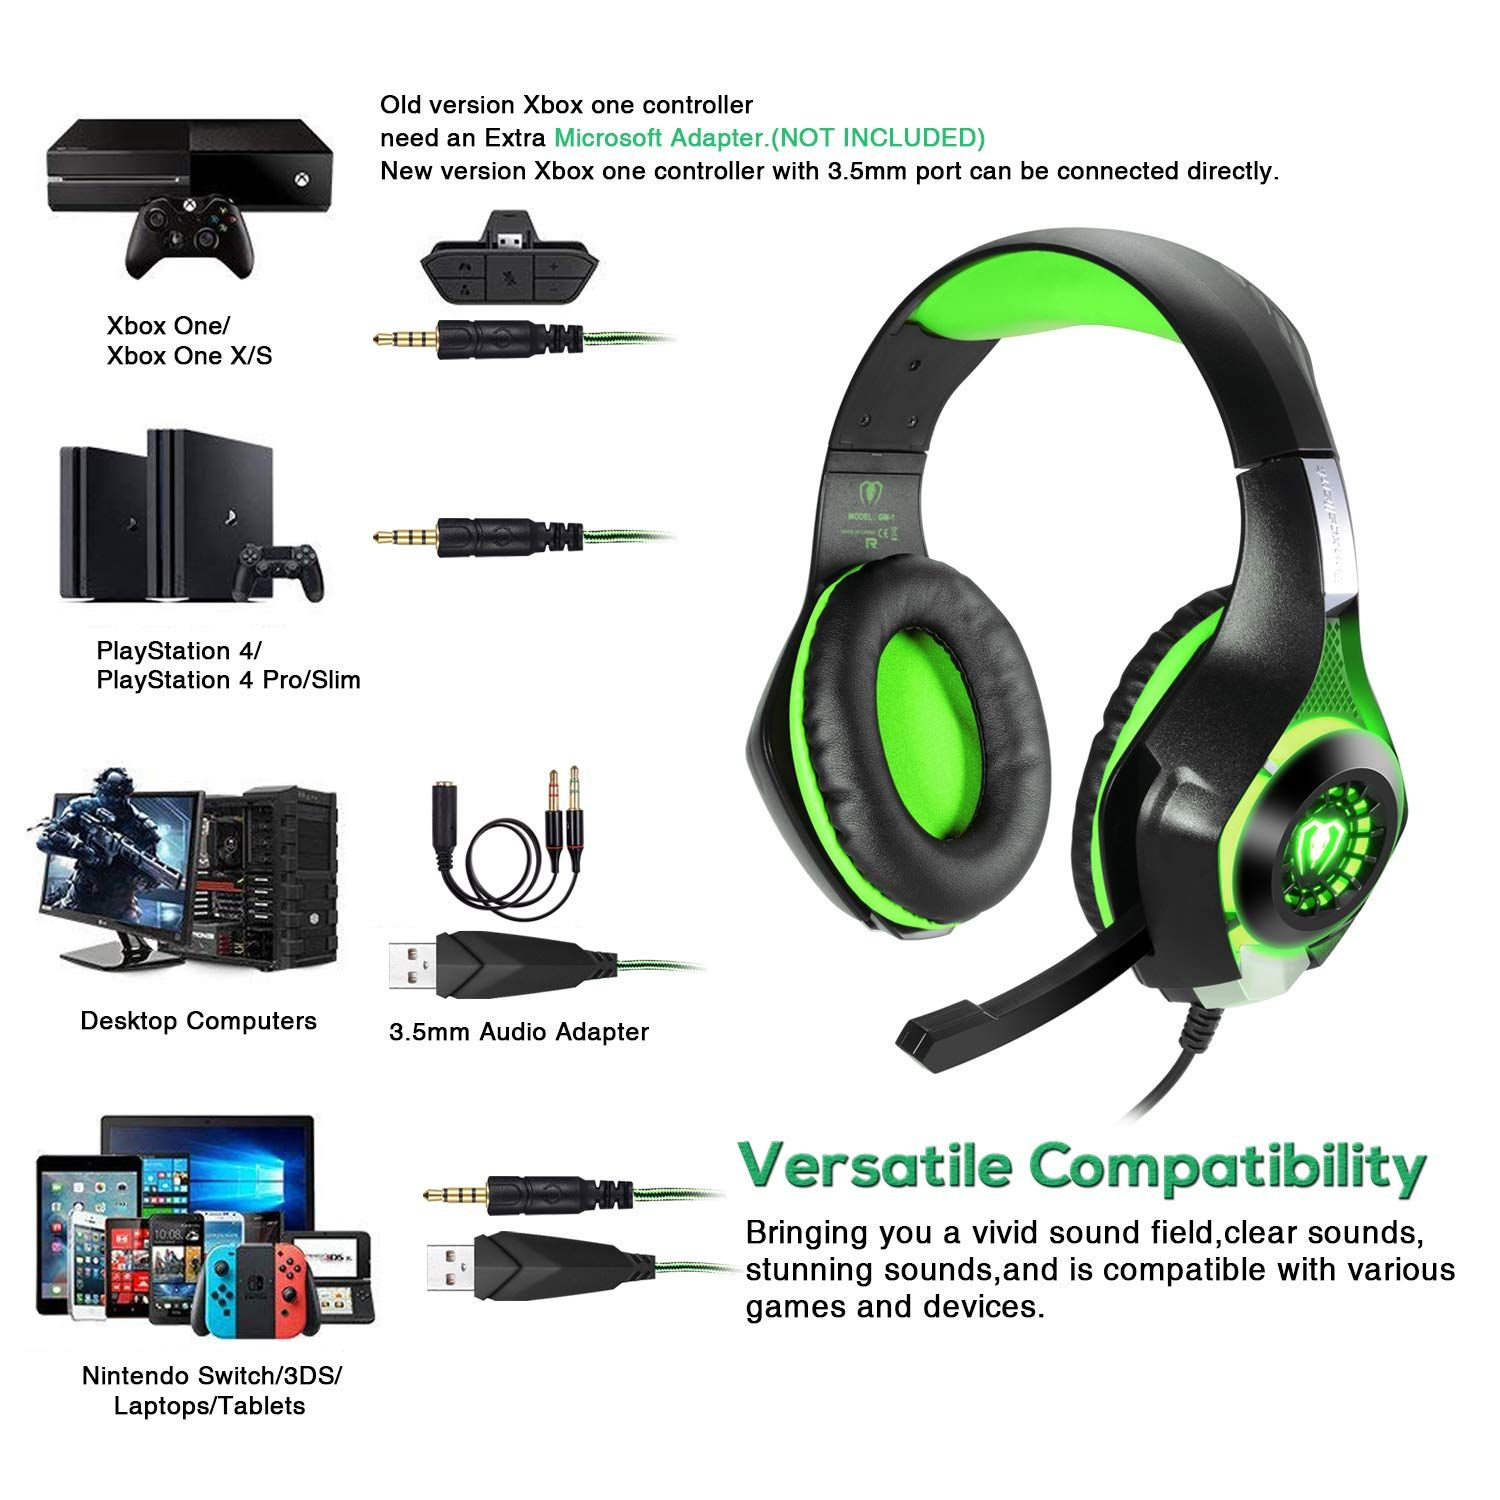 Bluefire 3 5mm Ps4 Gaming Headset Headphone With Microphone And Led Light Compatible With Playstation 4 Xbox One Pc Ps4 Gaming Headset Headset Gaming Headset